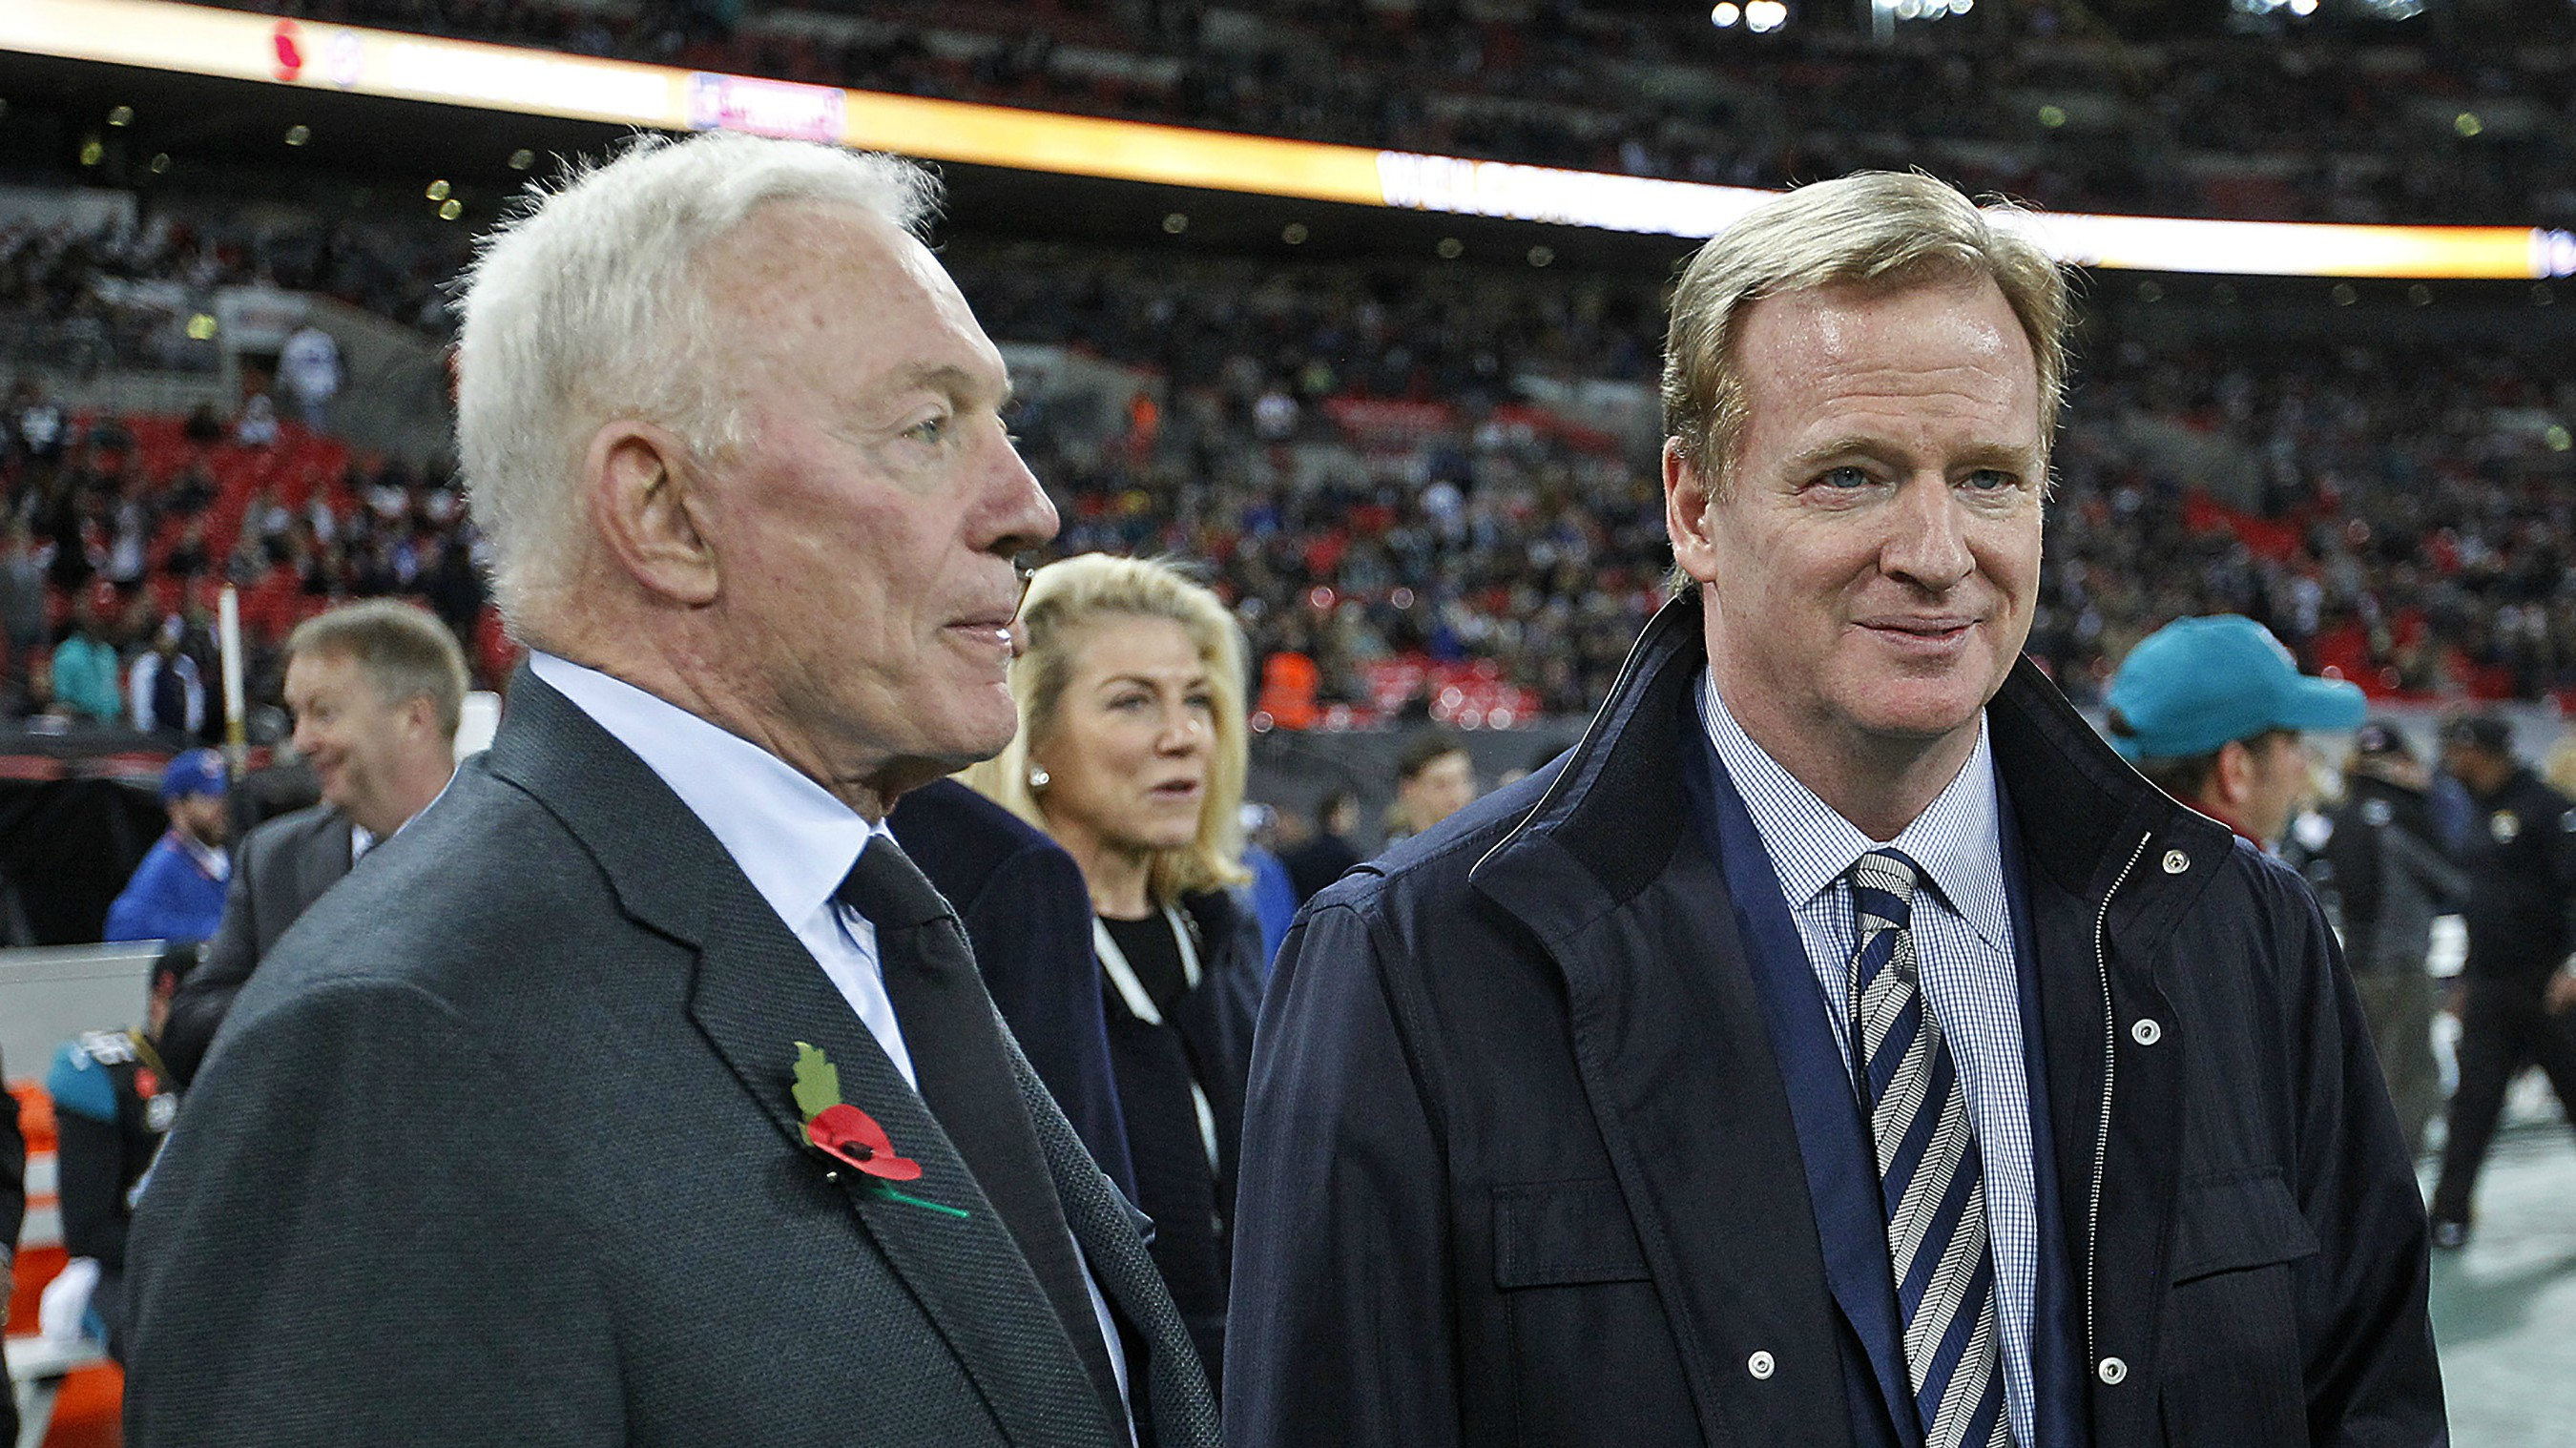 Jerry-jones-coming-after-goodell